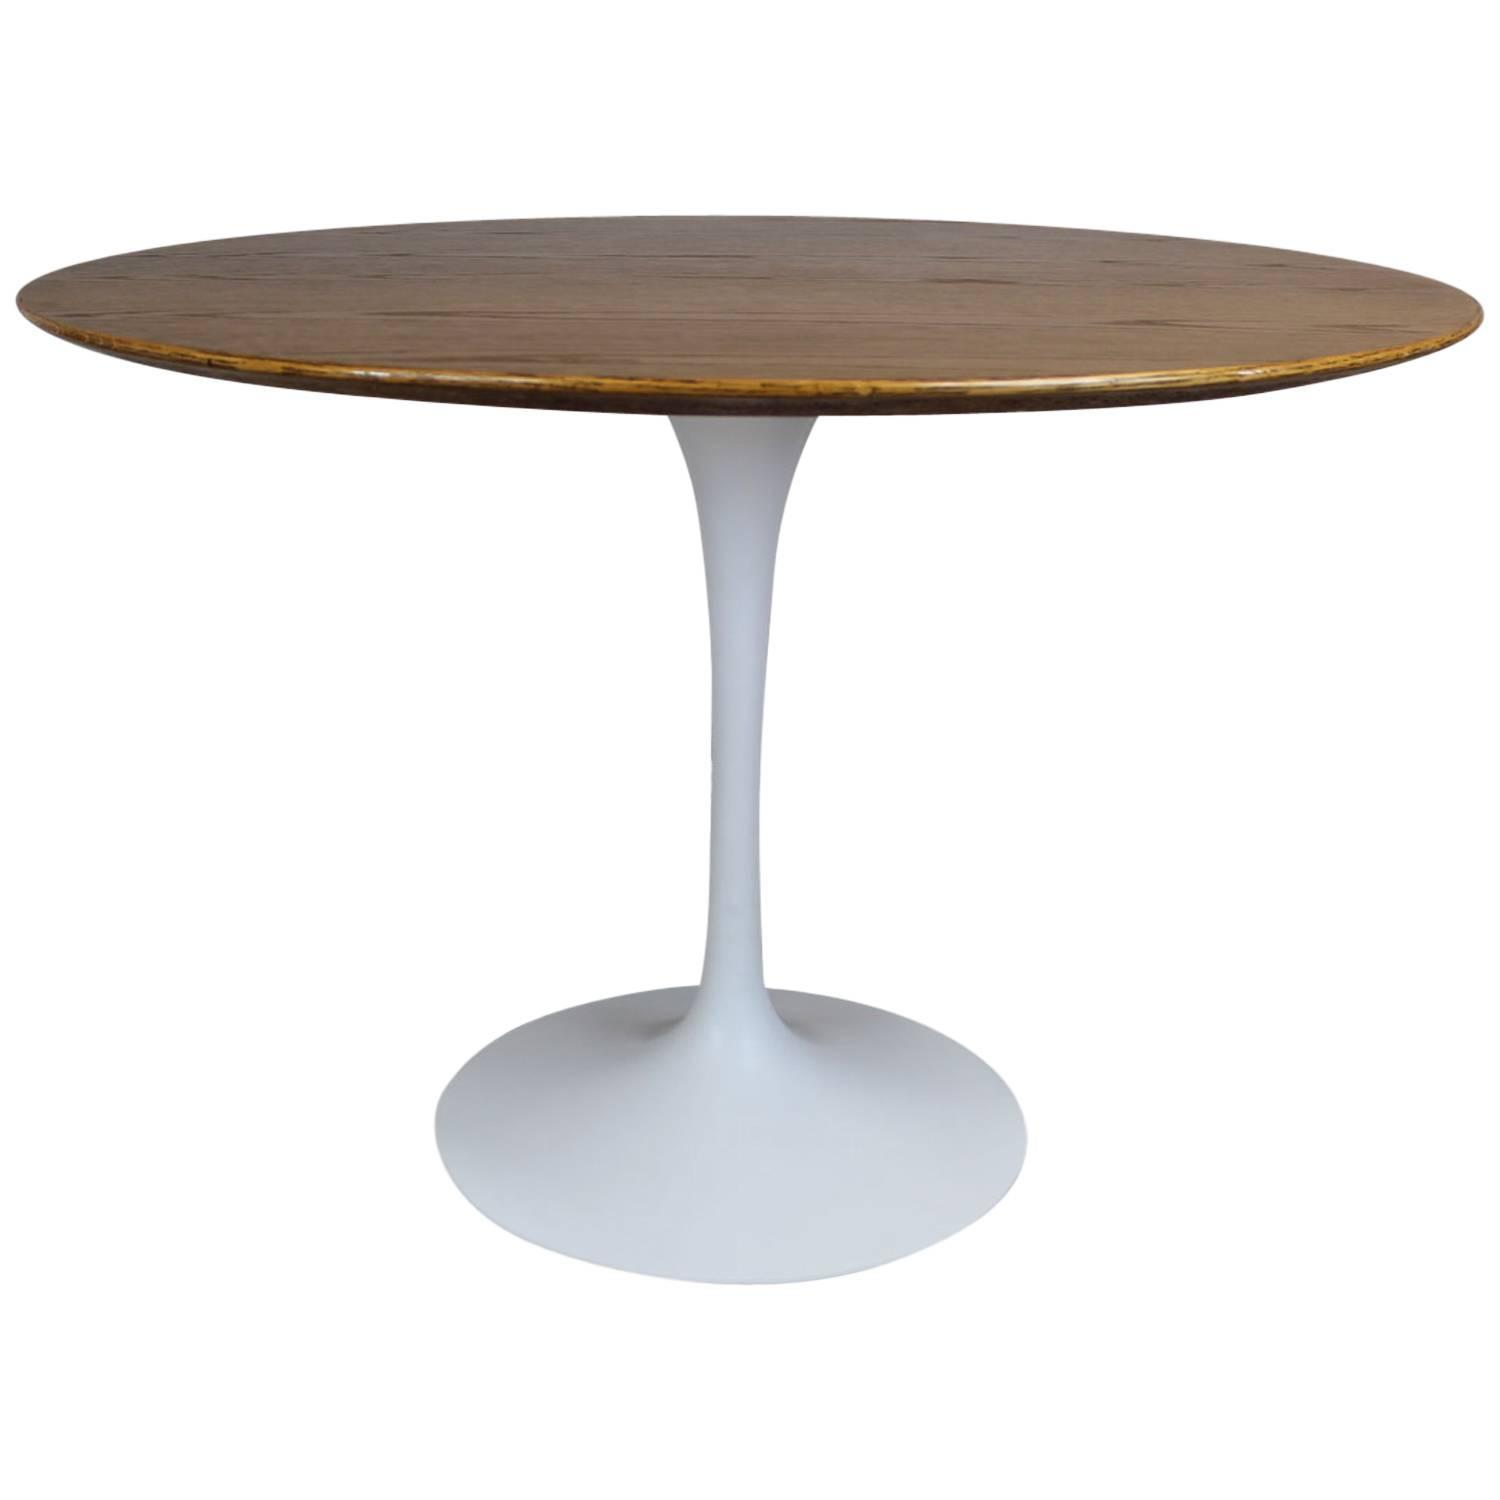 Eero Saarinen Tulip Base Dining Table At 1stdibs